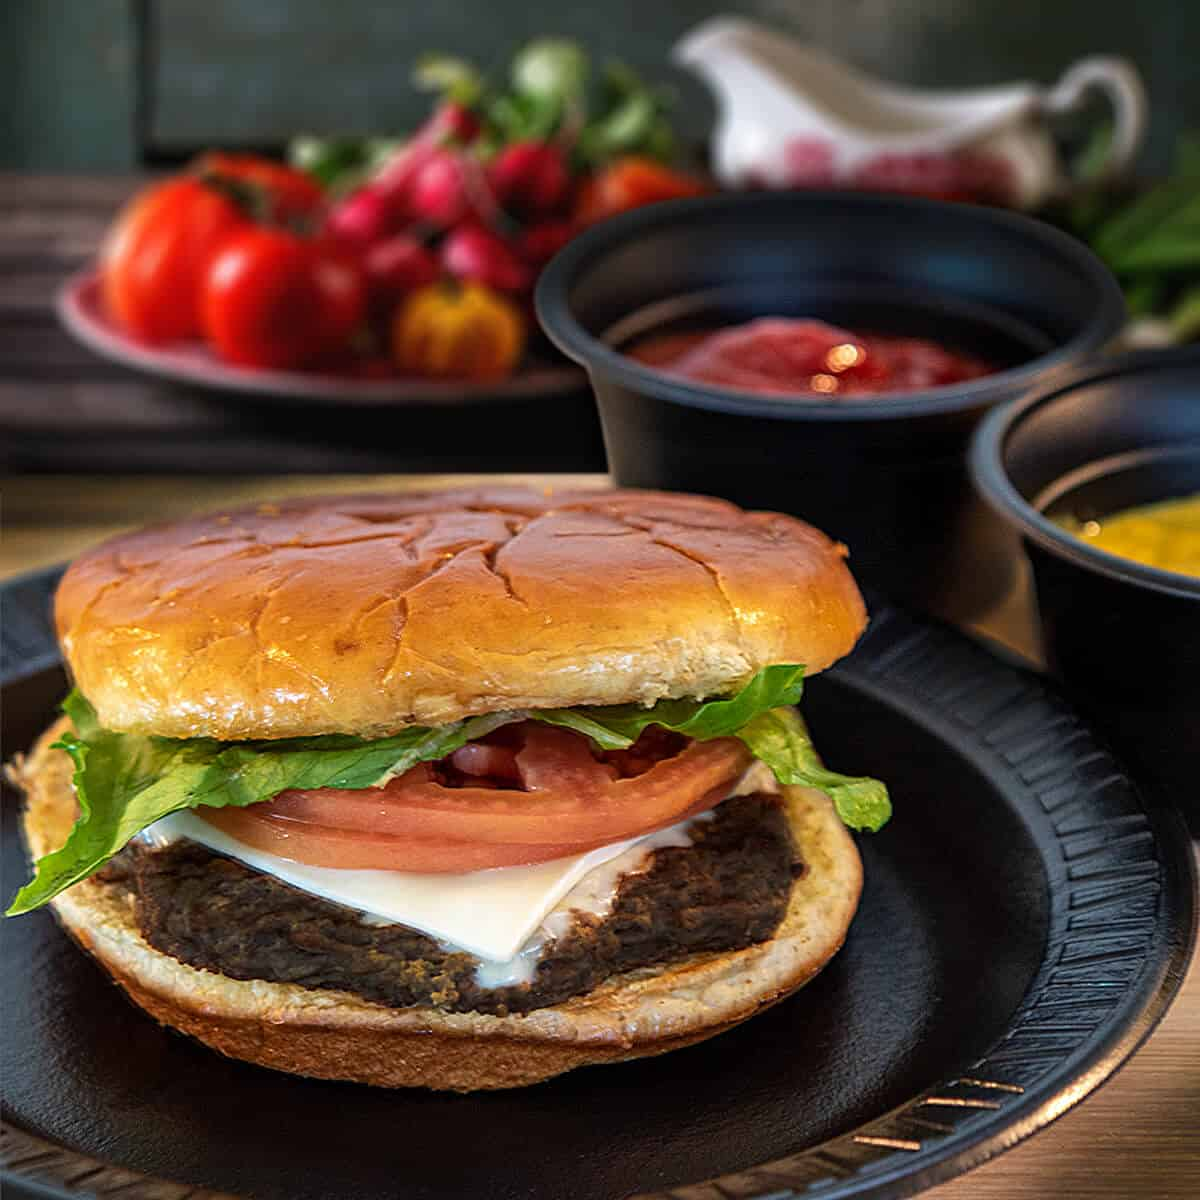 Cheeseburger on bun with tomatoes and lettuce and chips